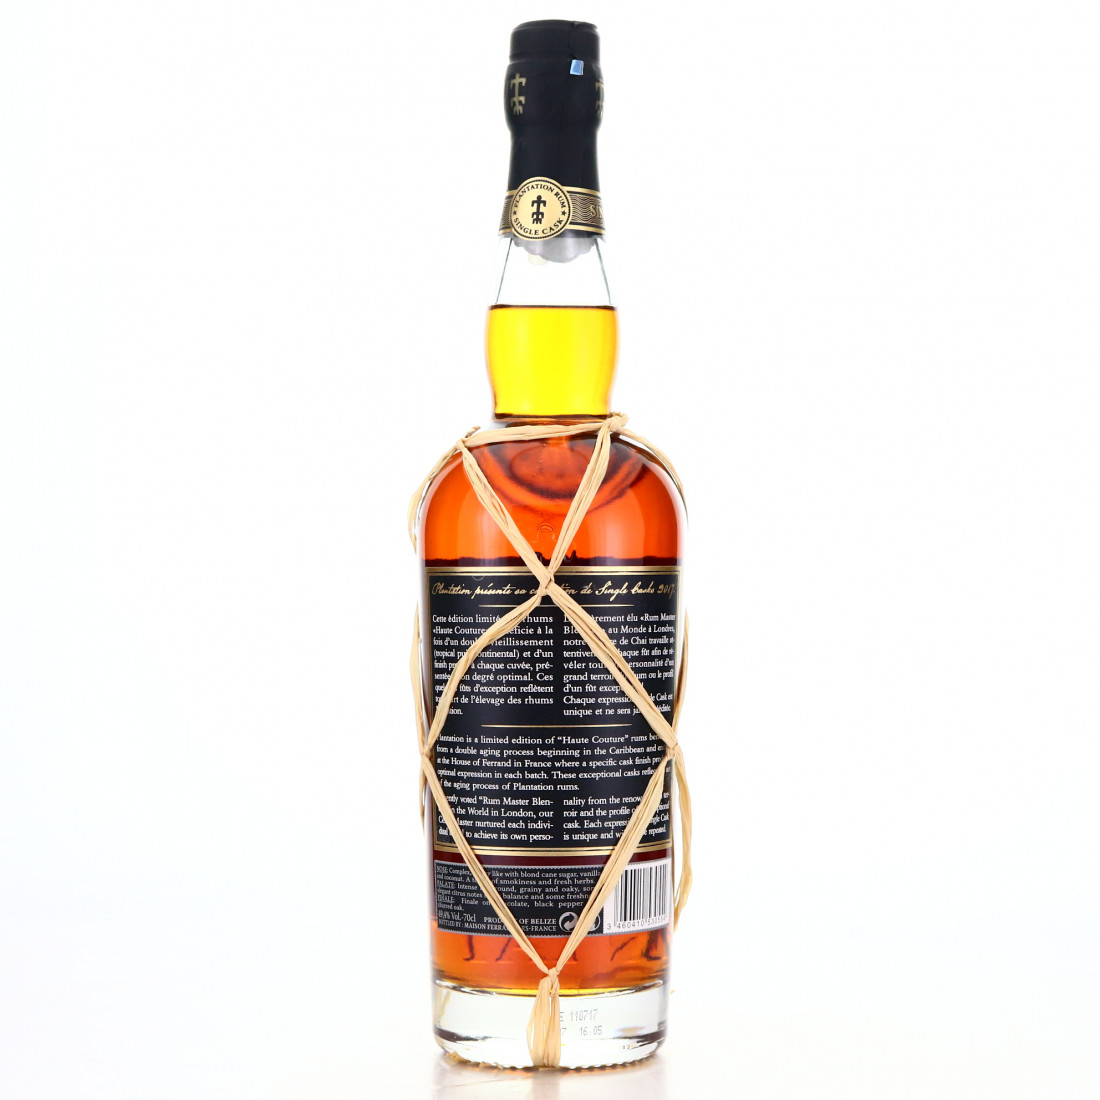 Belize Rum XO Plantation Single Cask #5